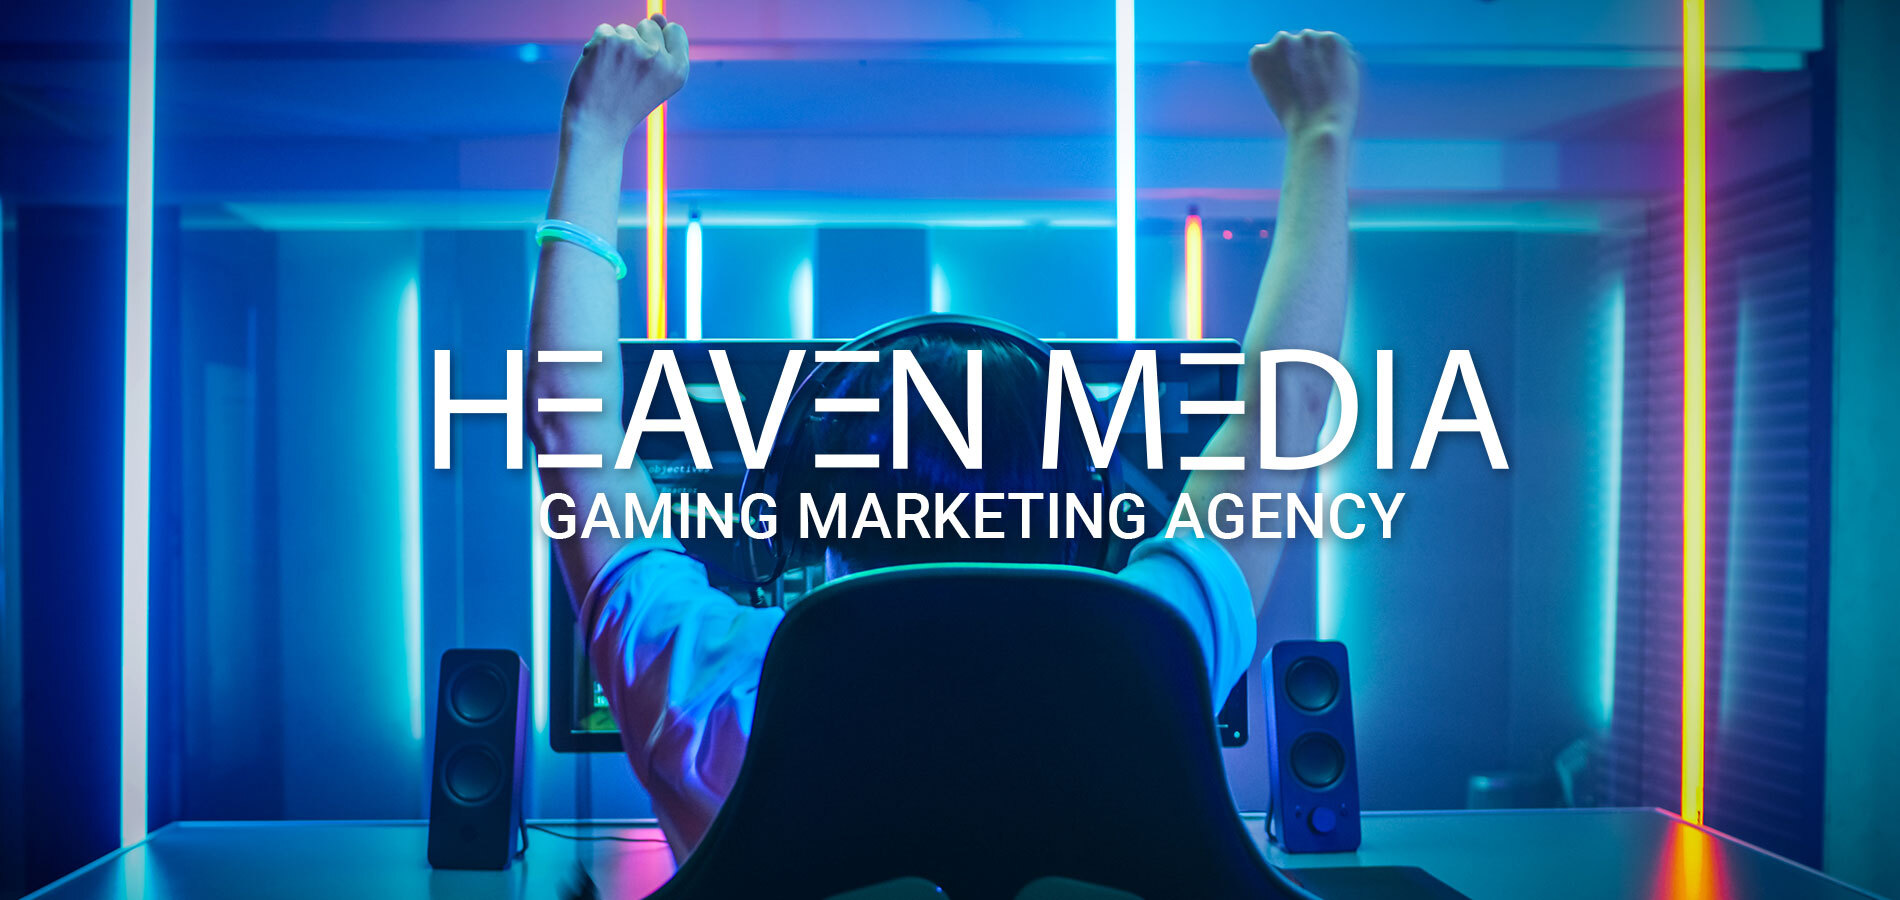 Heaven-Media-Gamer-header.jpg